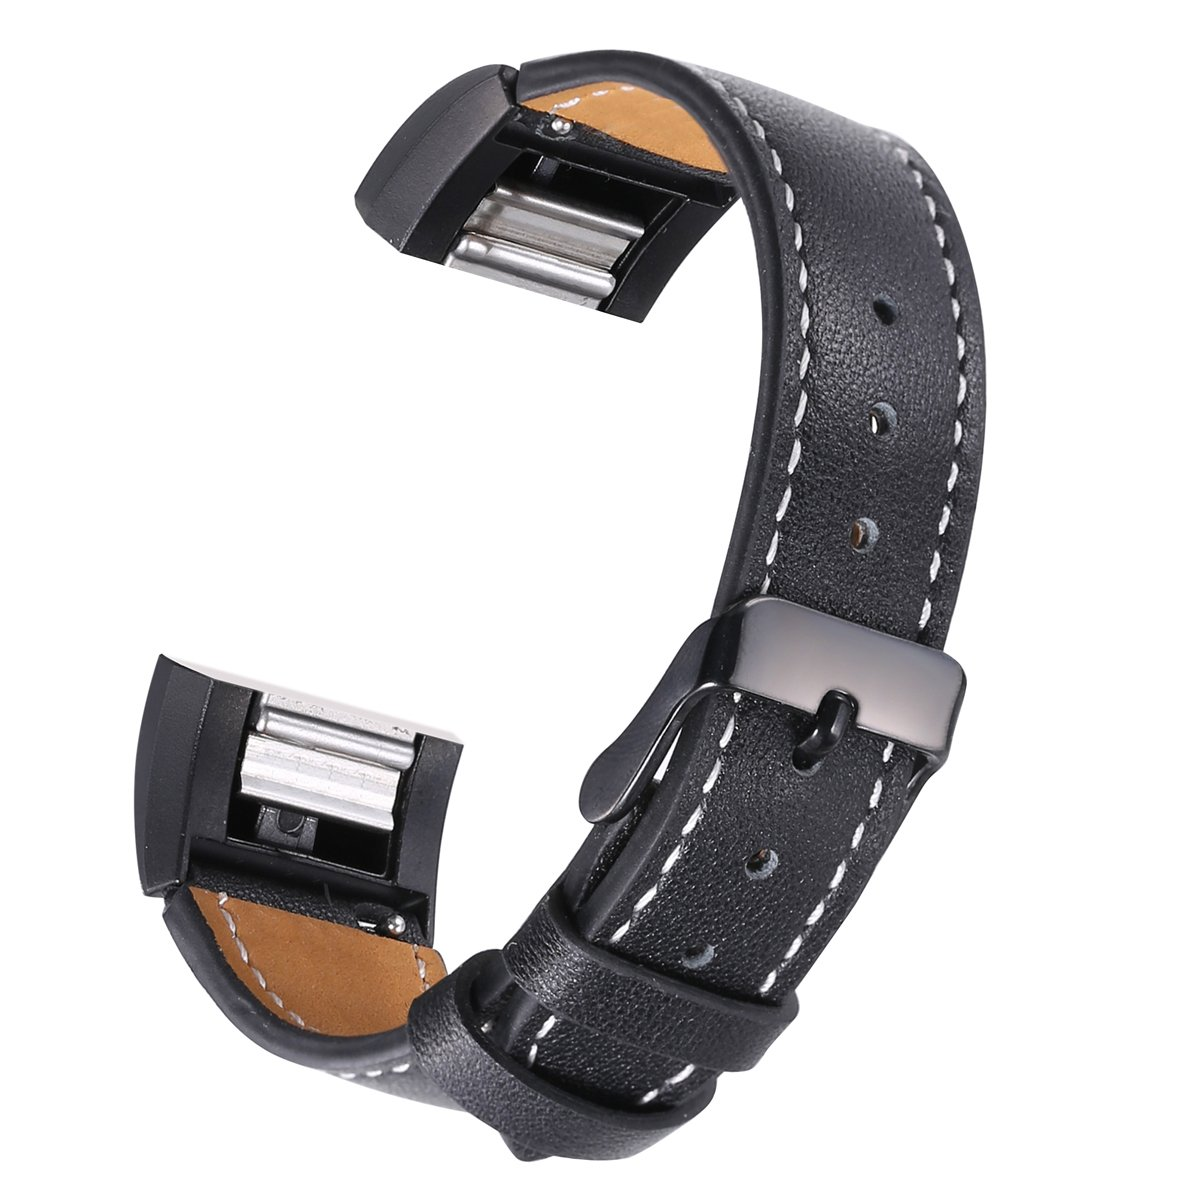 bayite Leather Band for Fitbit Charge 2, Black with line, 5.5'' - 7.1''